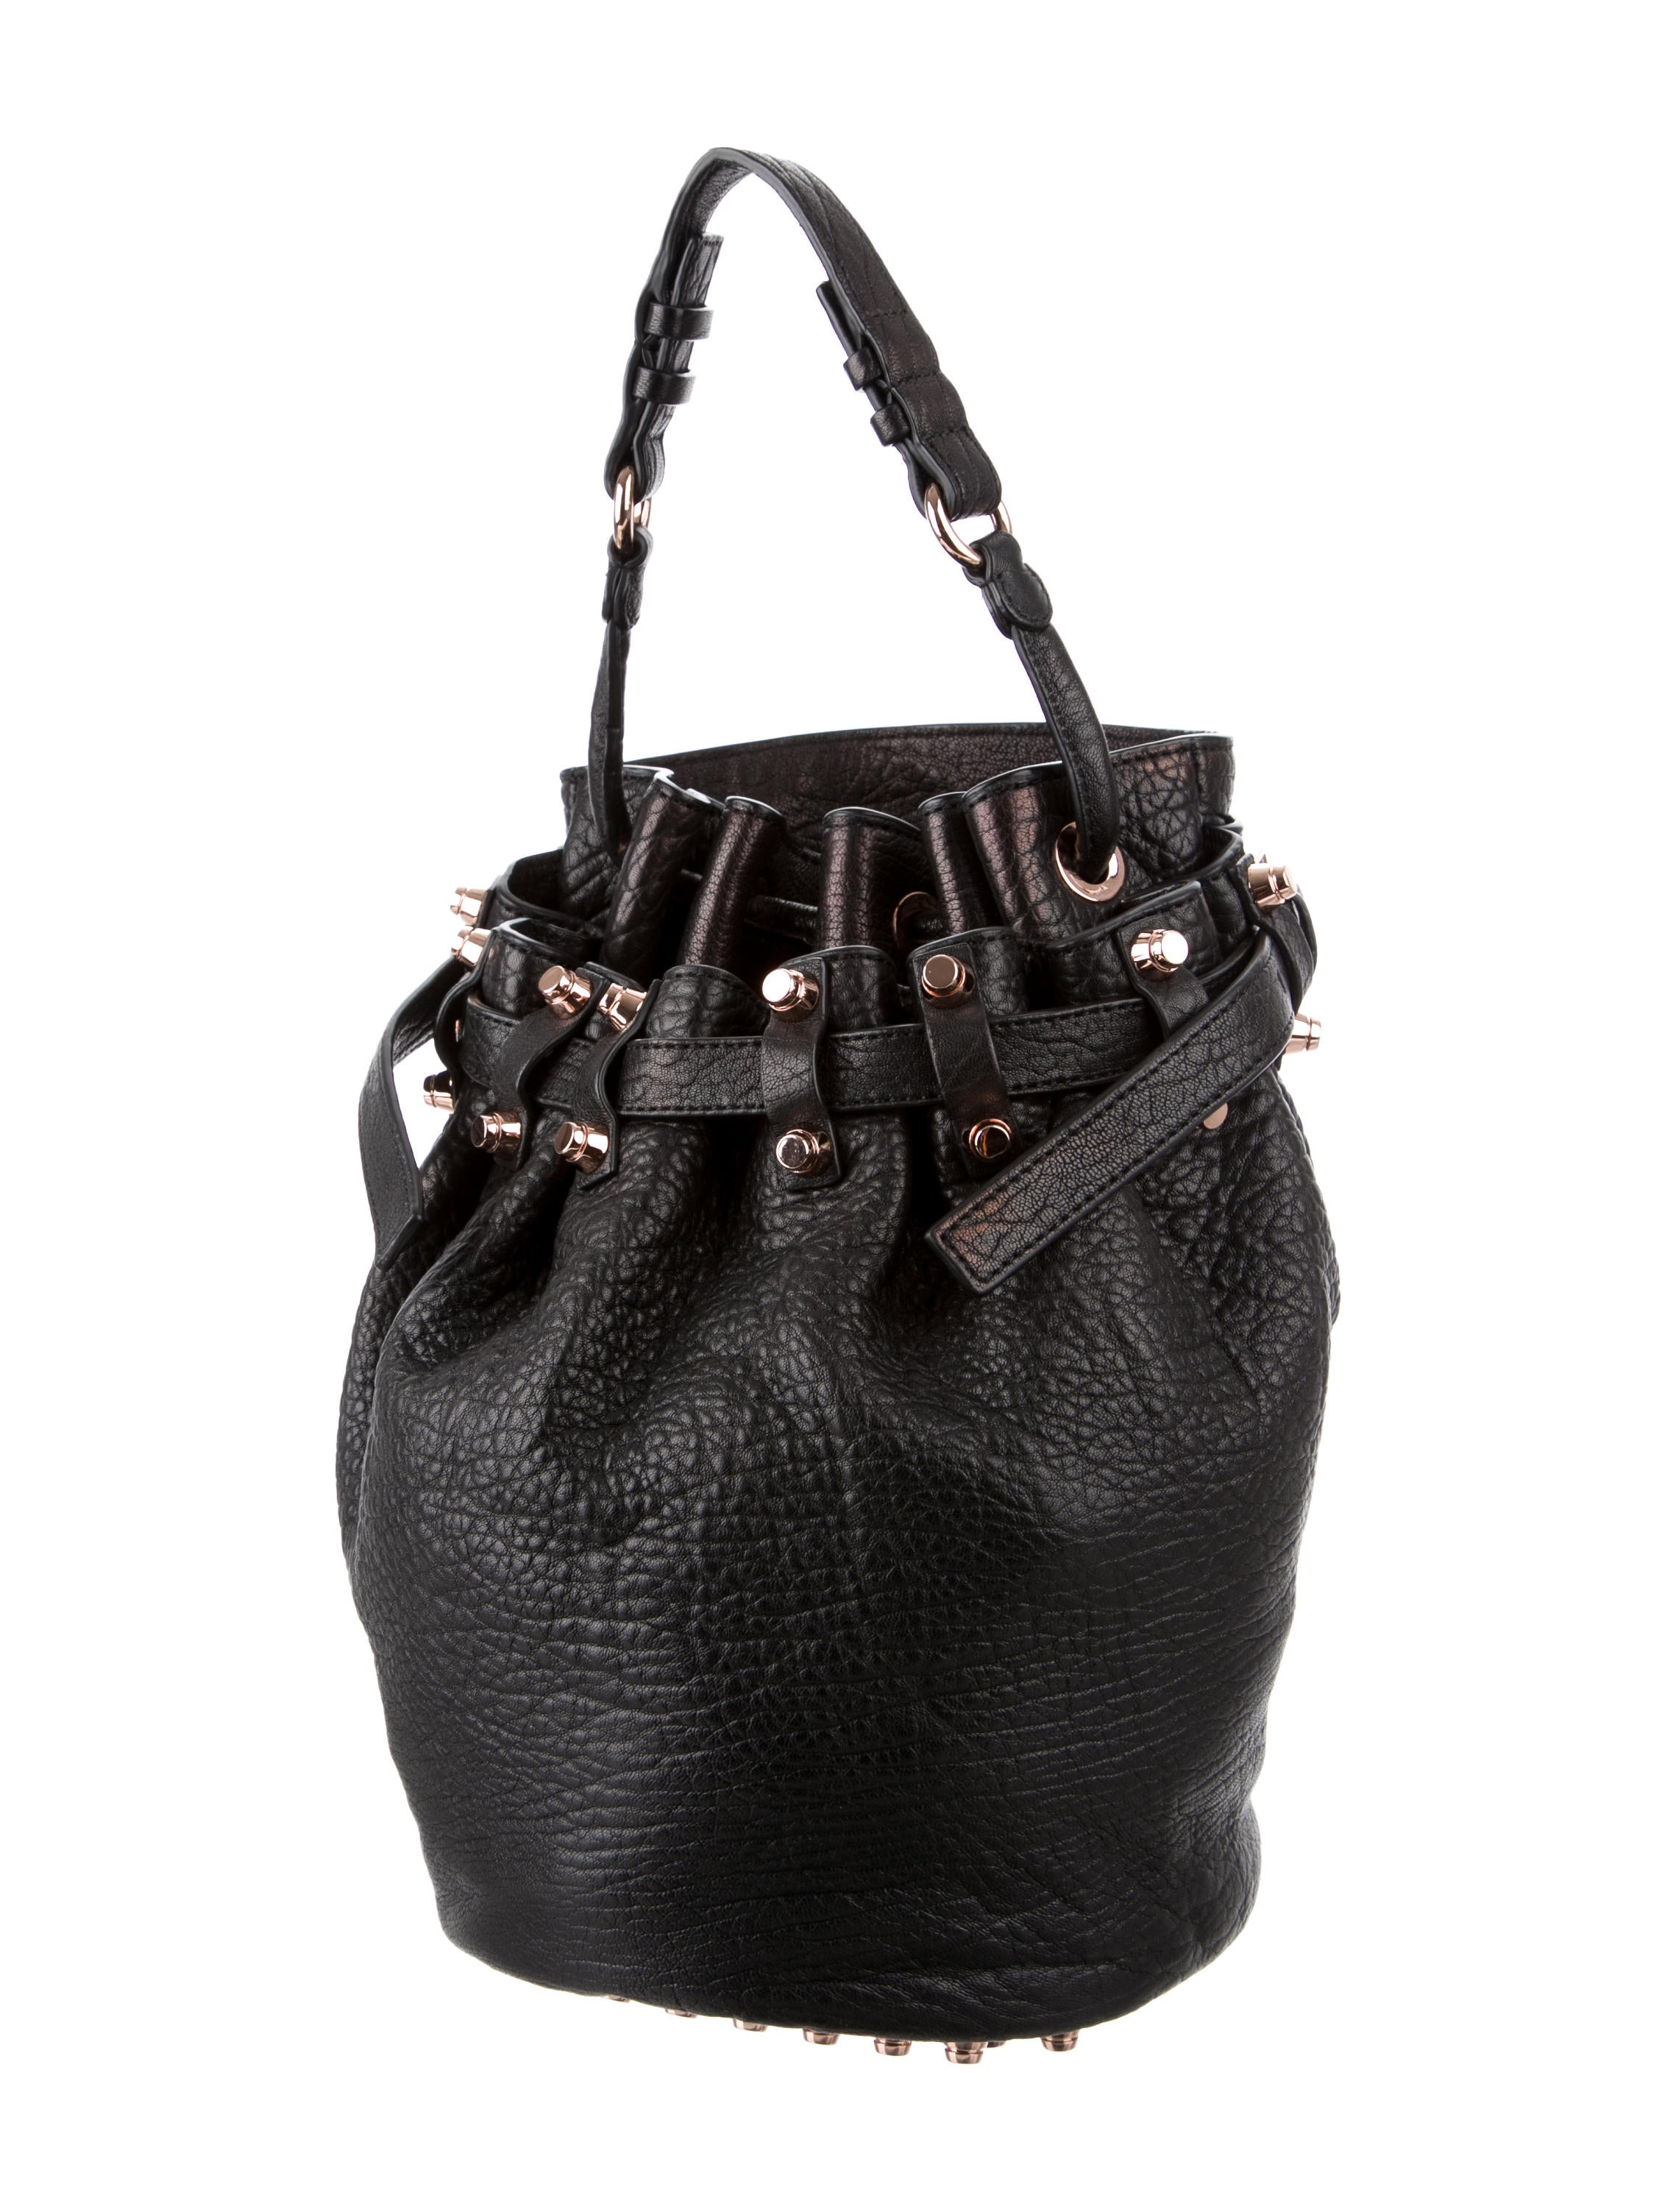 Find great deals on eBay for alexander wang bucket bag. Shop with confidence.